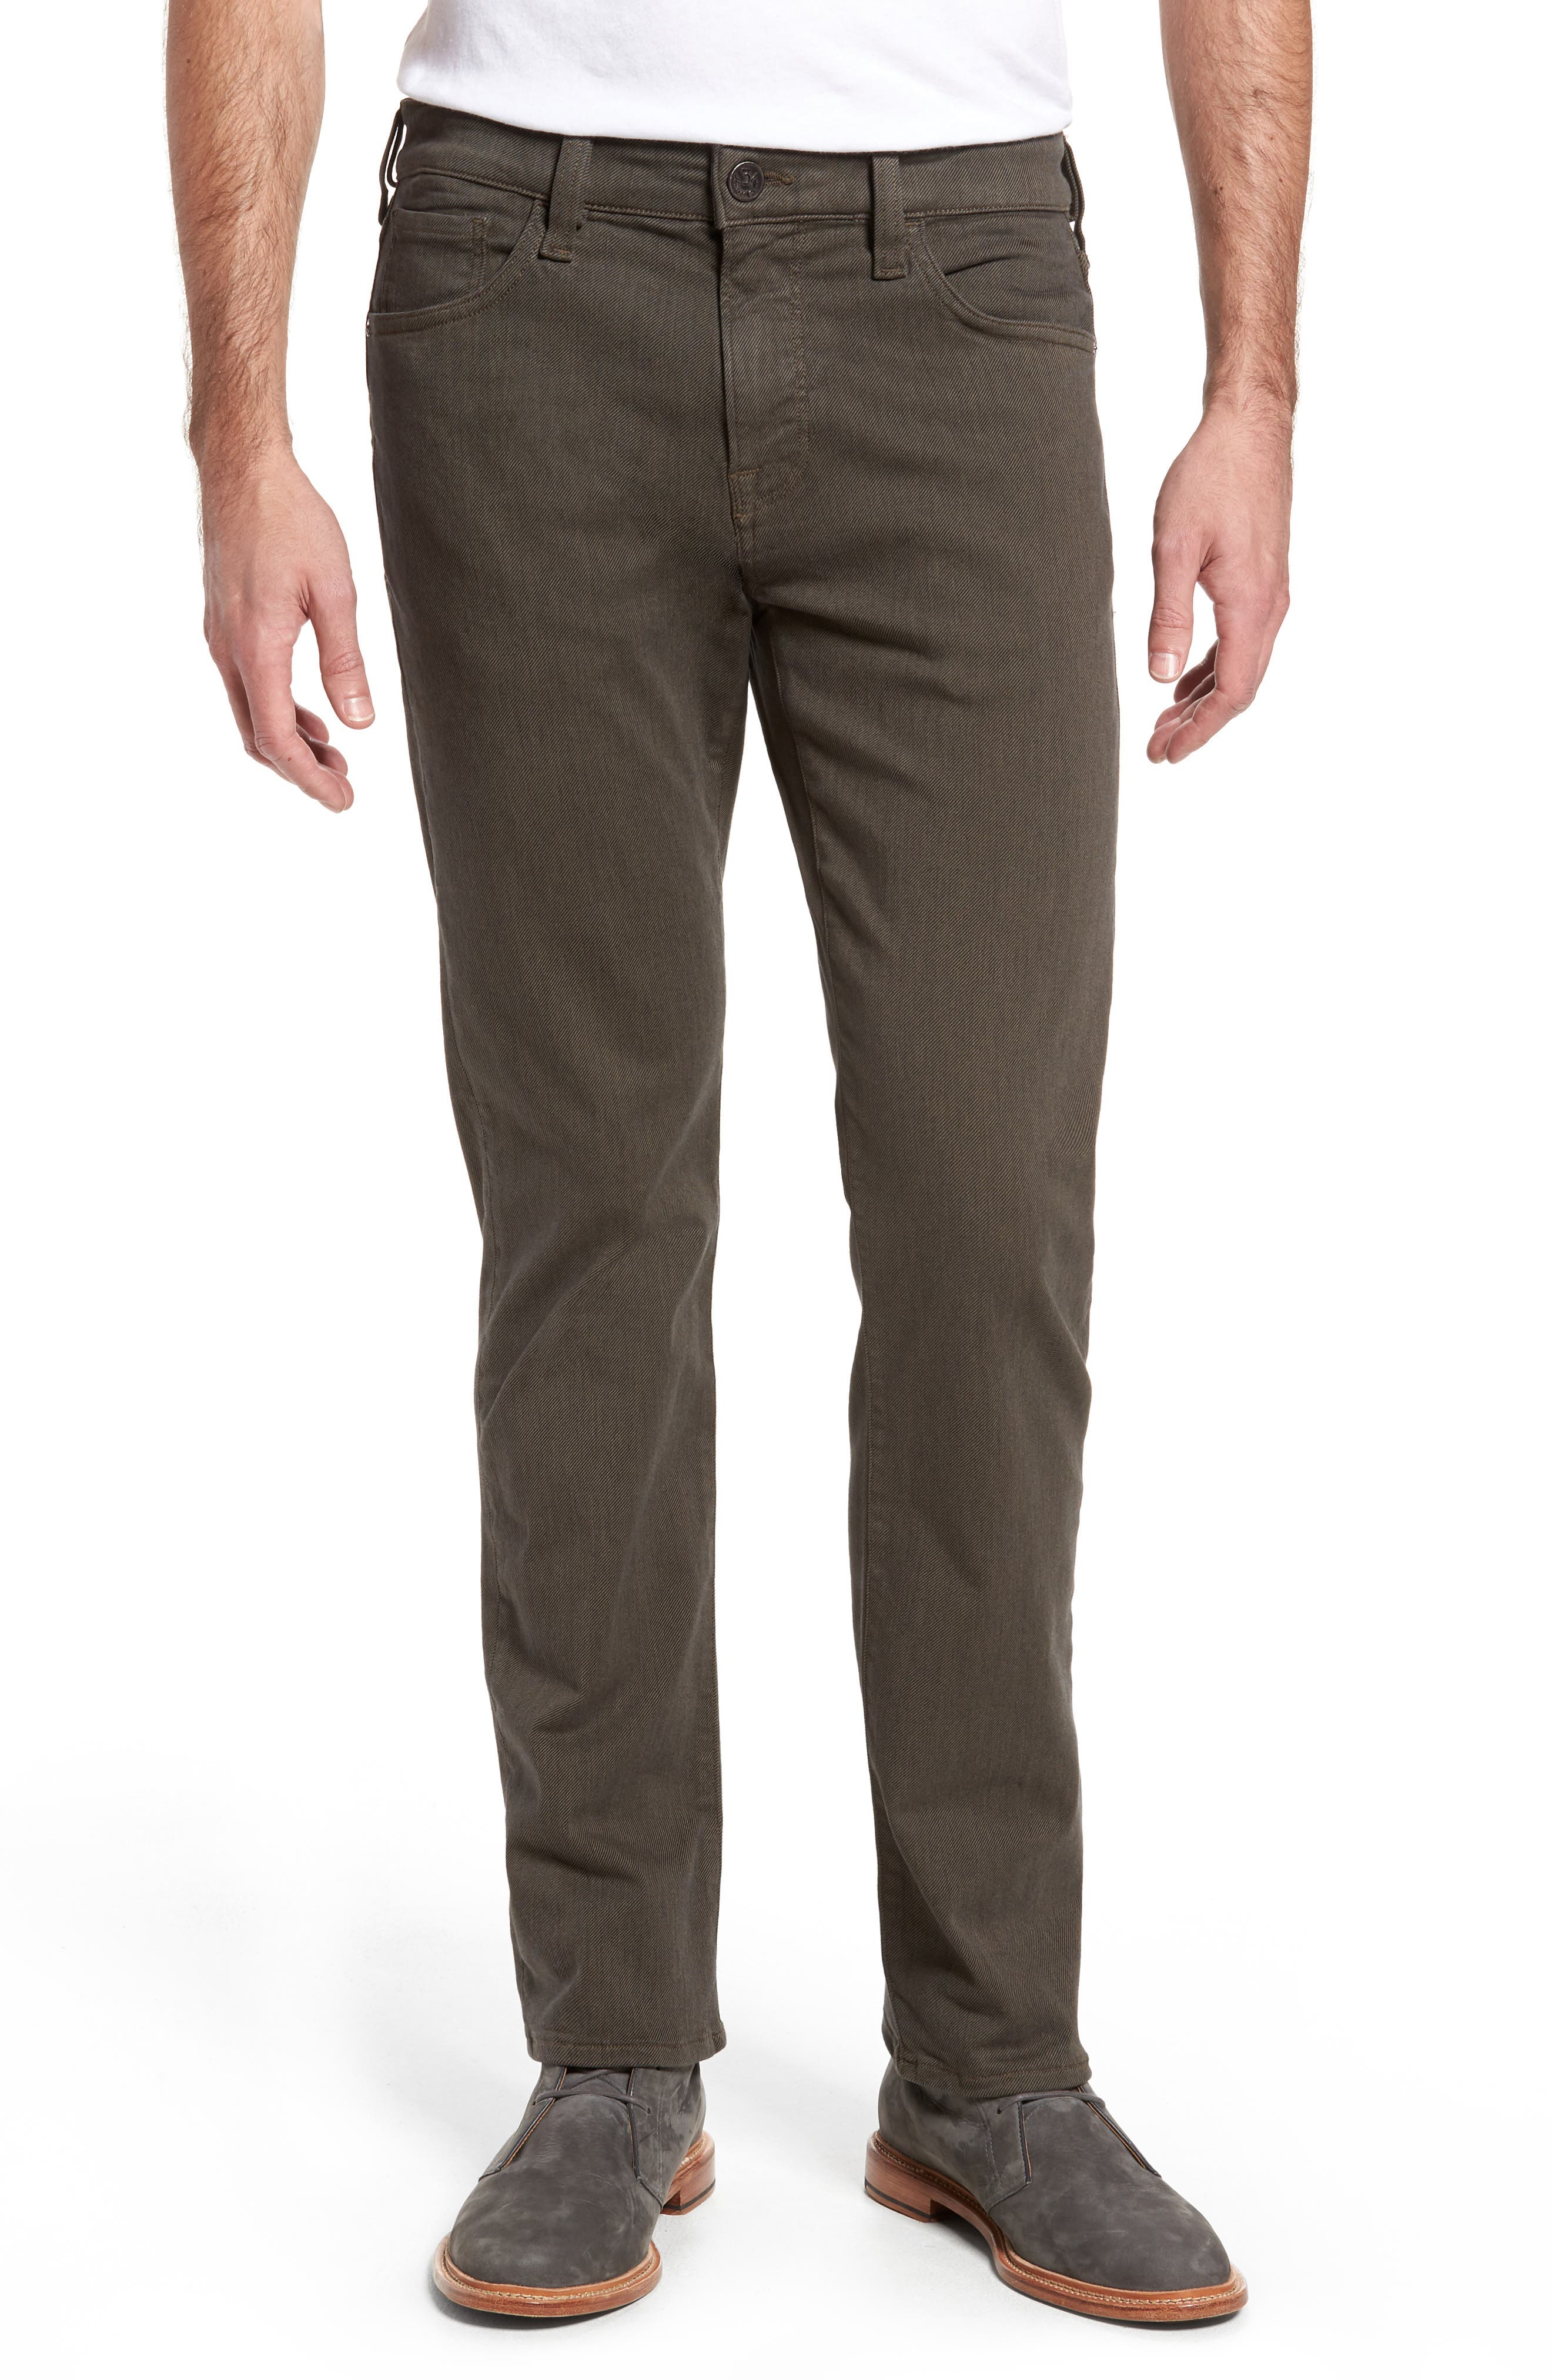 34 HERITAGE Courage Straight Leg Jeans